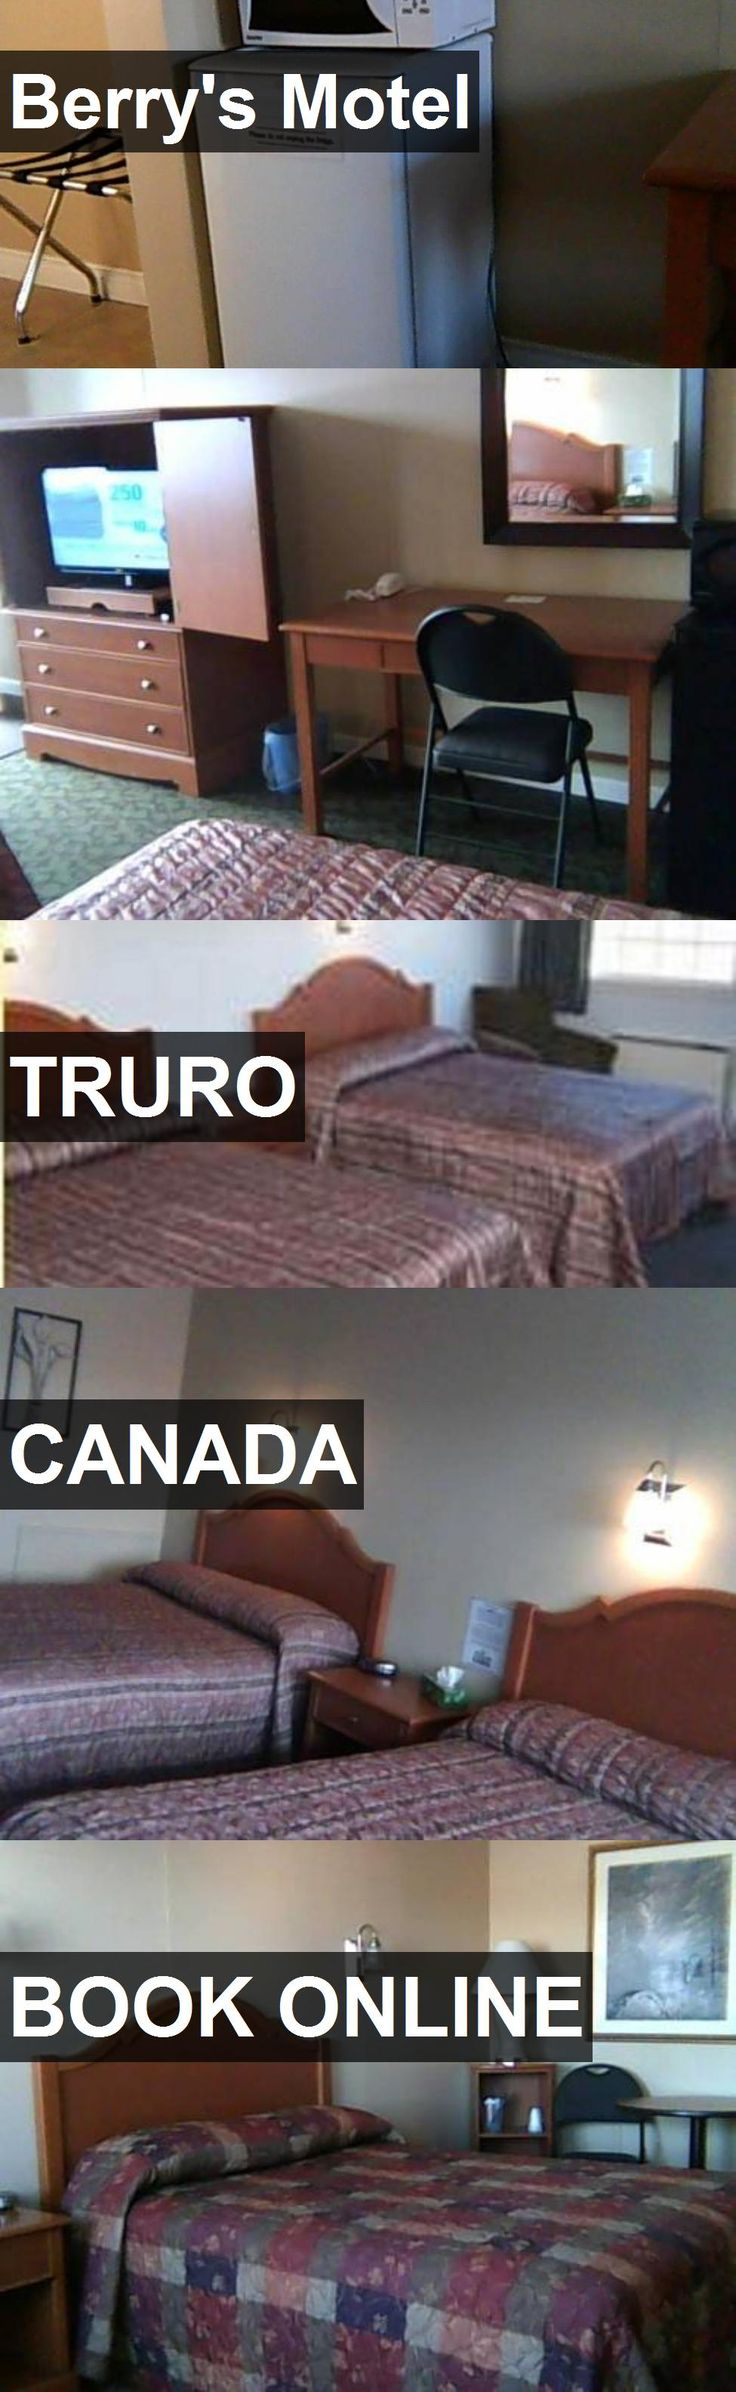 Hotel Berry's Motel in Truro, Canada. For more information, photos, reviews and best prices please follow the link. #Canada #Truro #travel #vacation #hotel